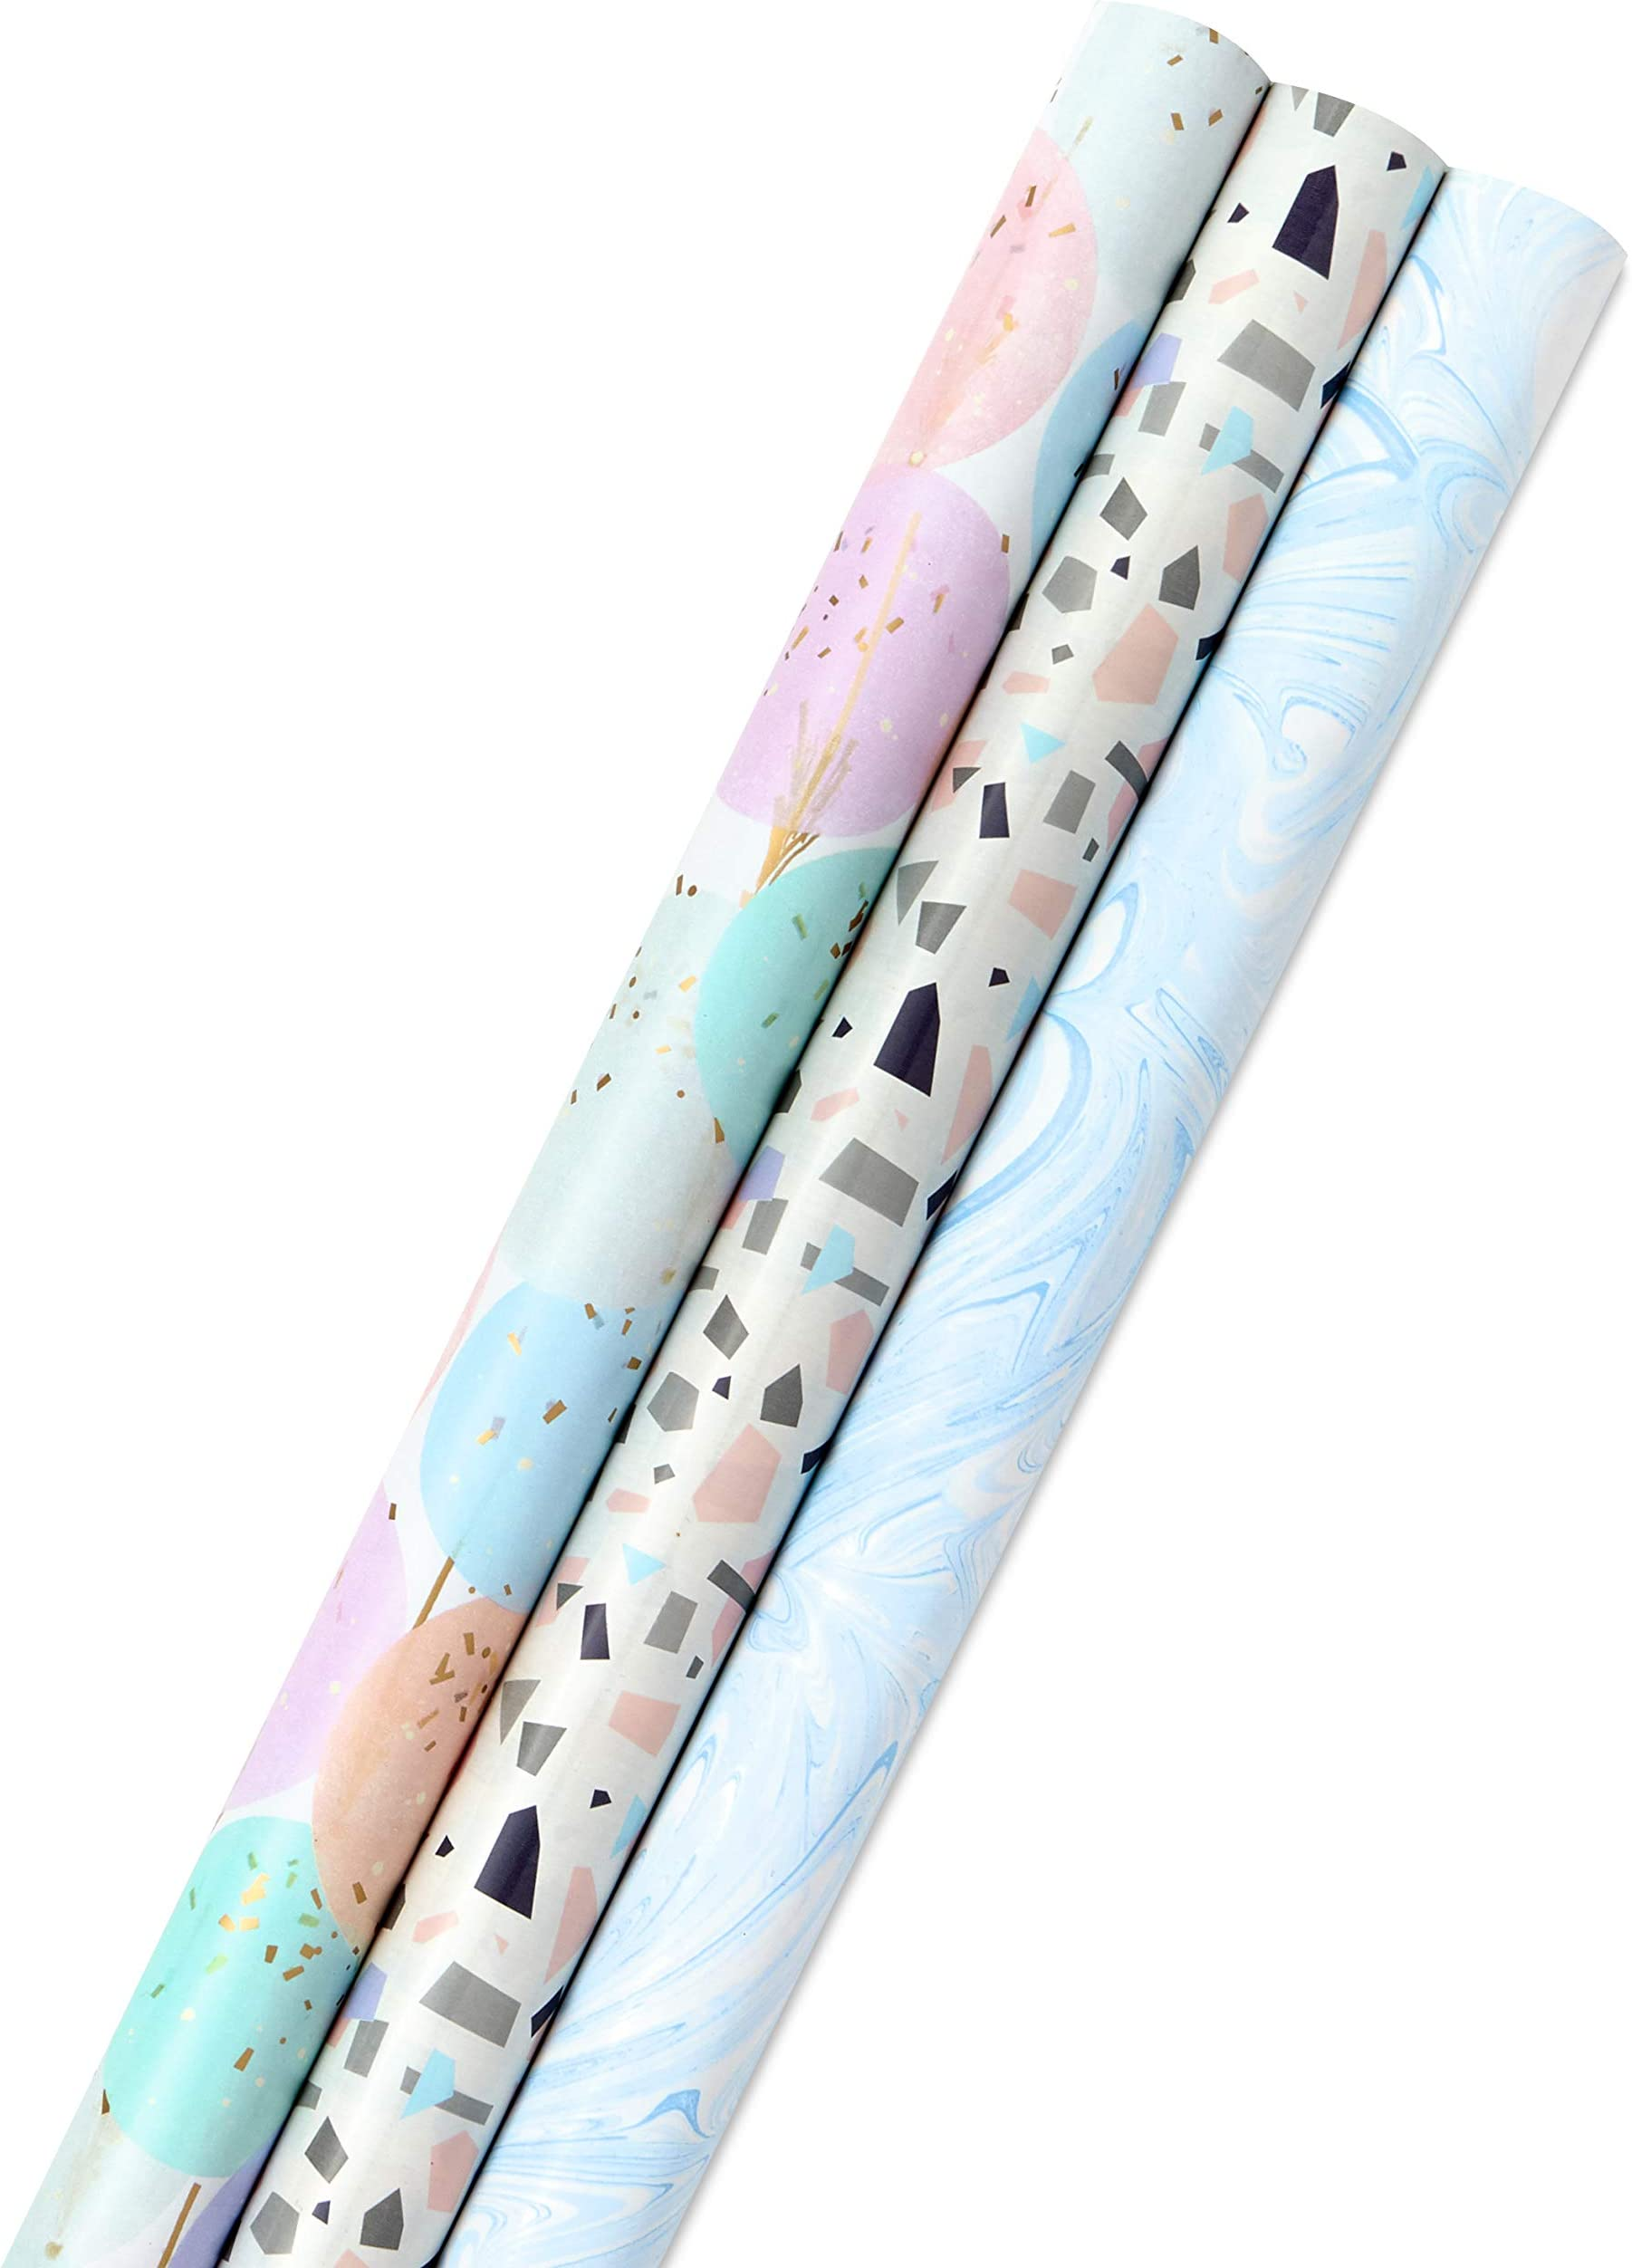 Mushroom Wrapping Paper Roll for Holiday Gifts on blue background Gender Neutral Whimsical Wrapping Paper Roll of 3 sheets